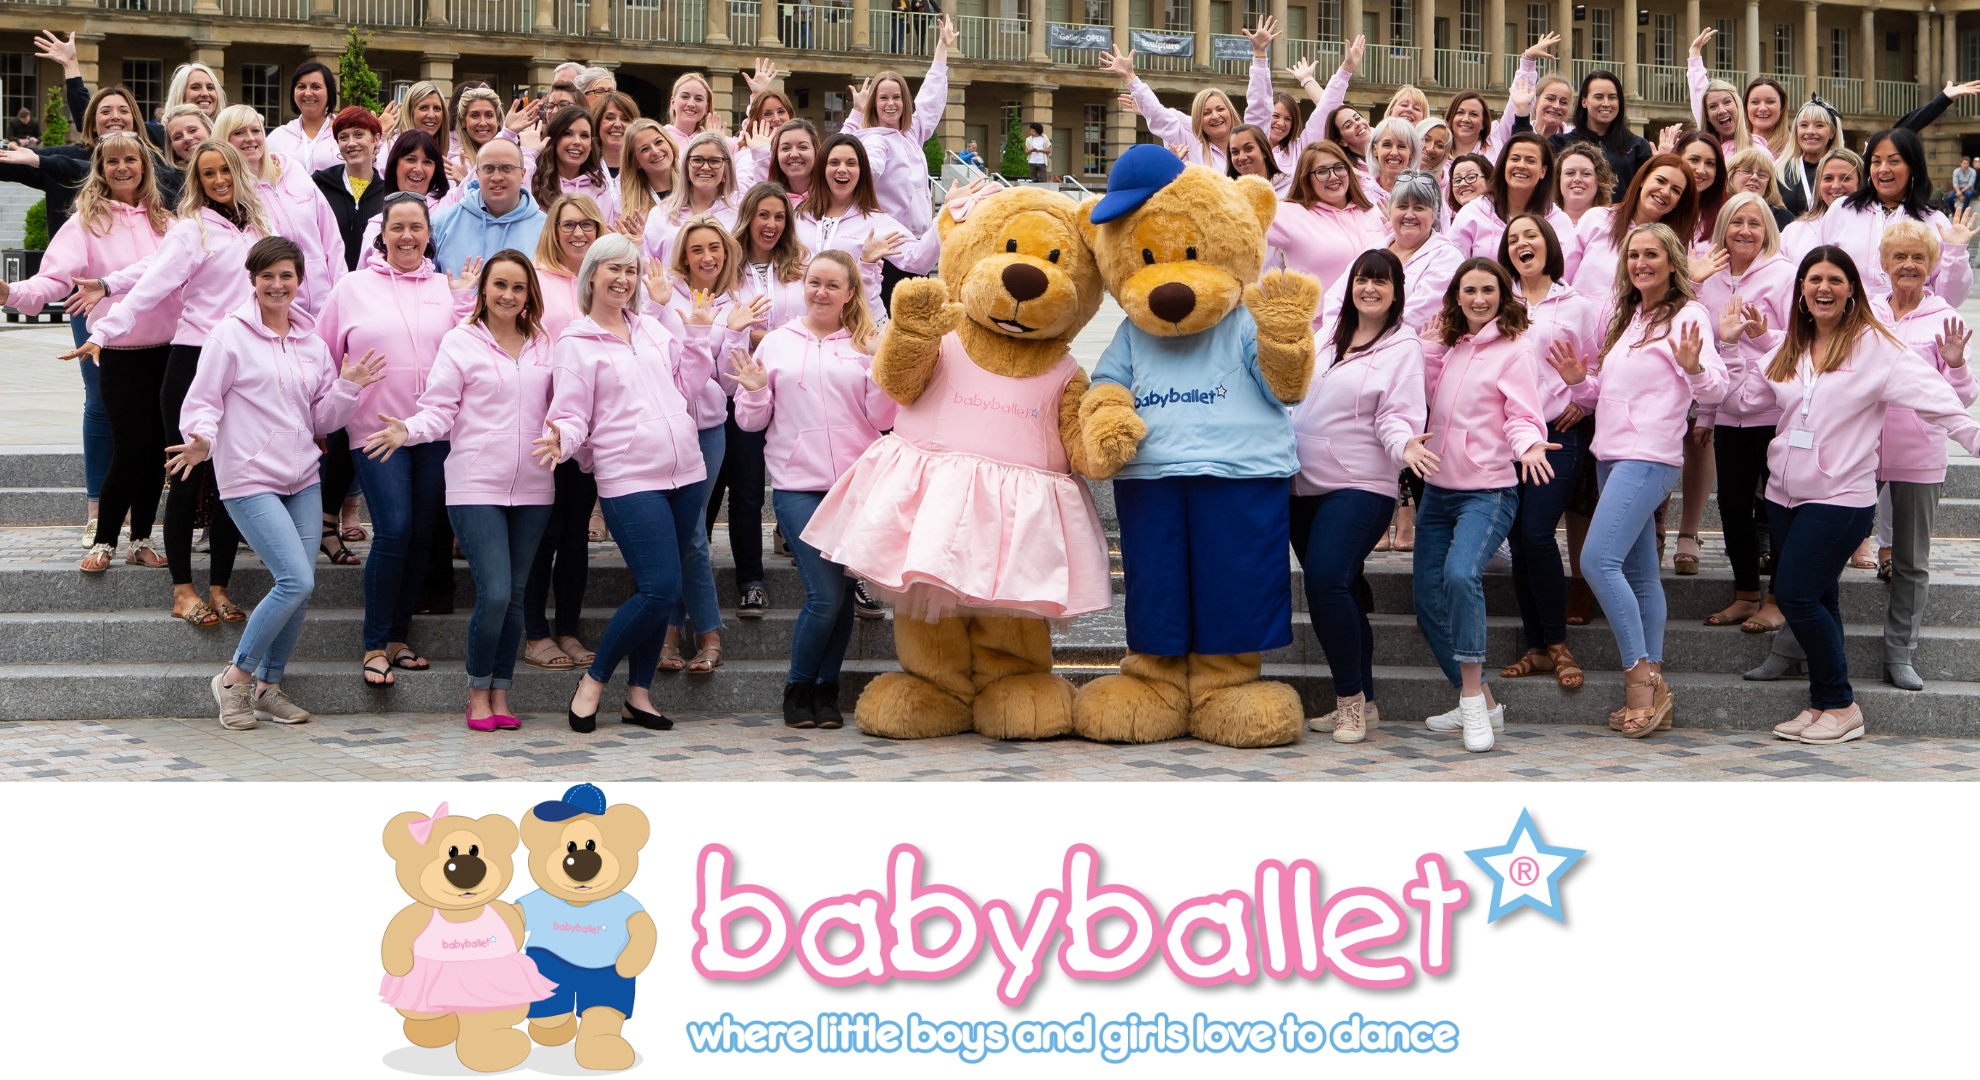 Babyballet celebrates successful debut in WorkBuzz survey with 5-star review